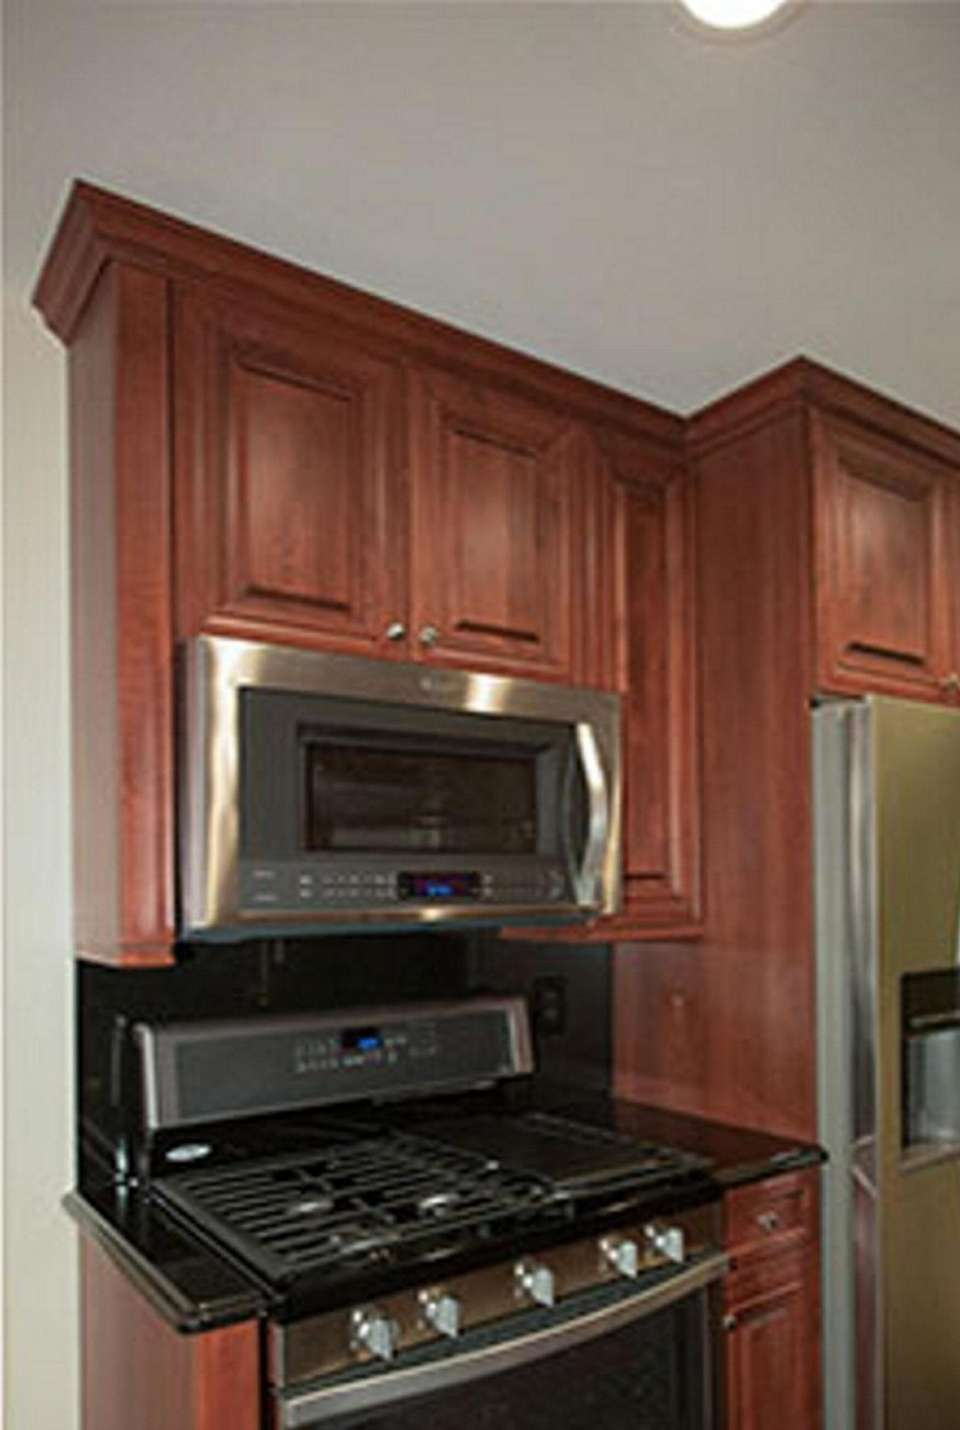 A one-bedroom, 720-square foot one-bedroom, one-bathroom apartment at